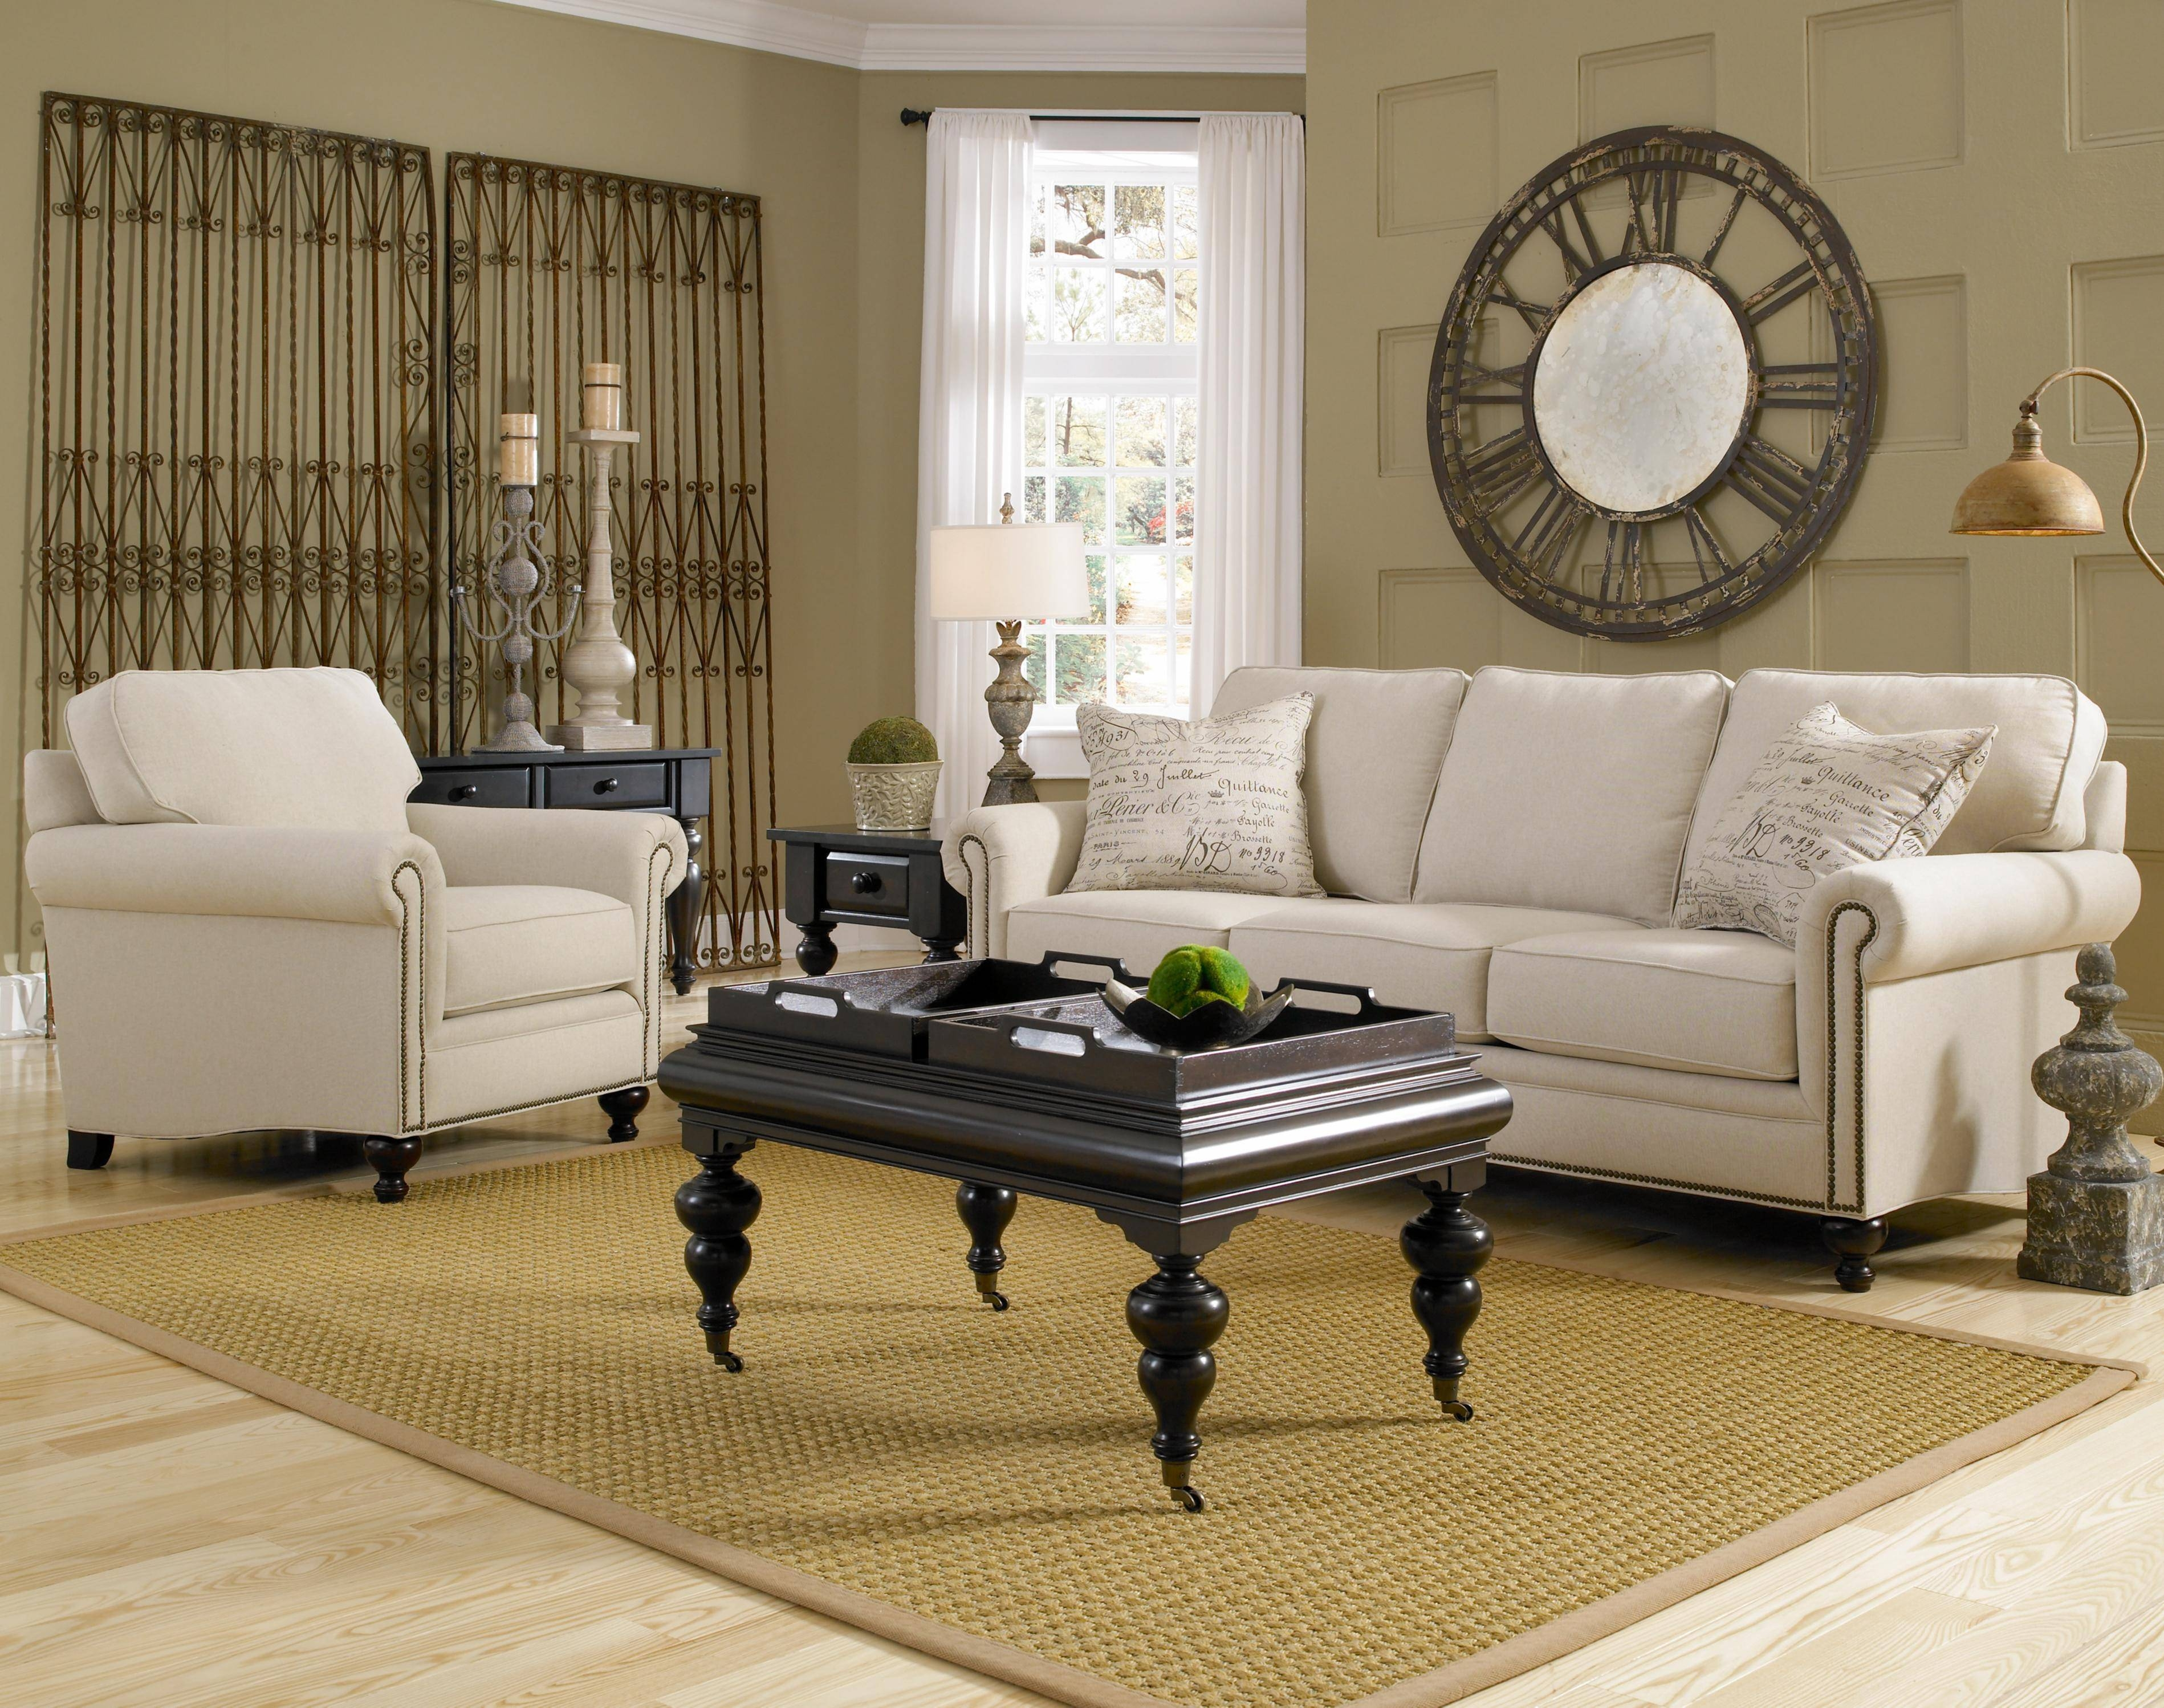 Broyhill Furniture Harrison Traditional Style Chair And Ottoman with regard to Broyhill Harrison Sofas (Image 6 of 15)